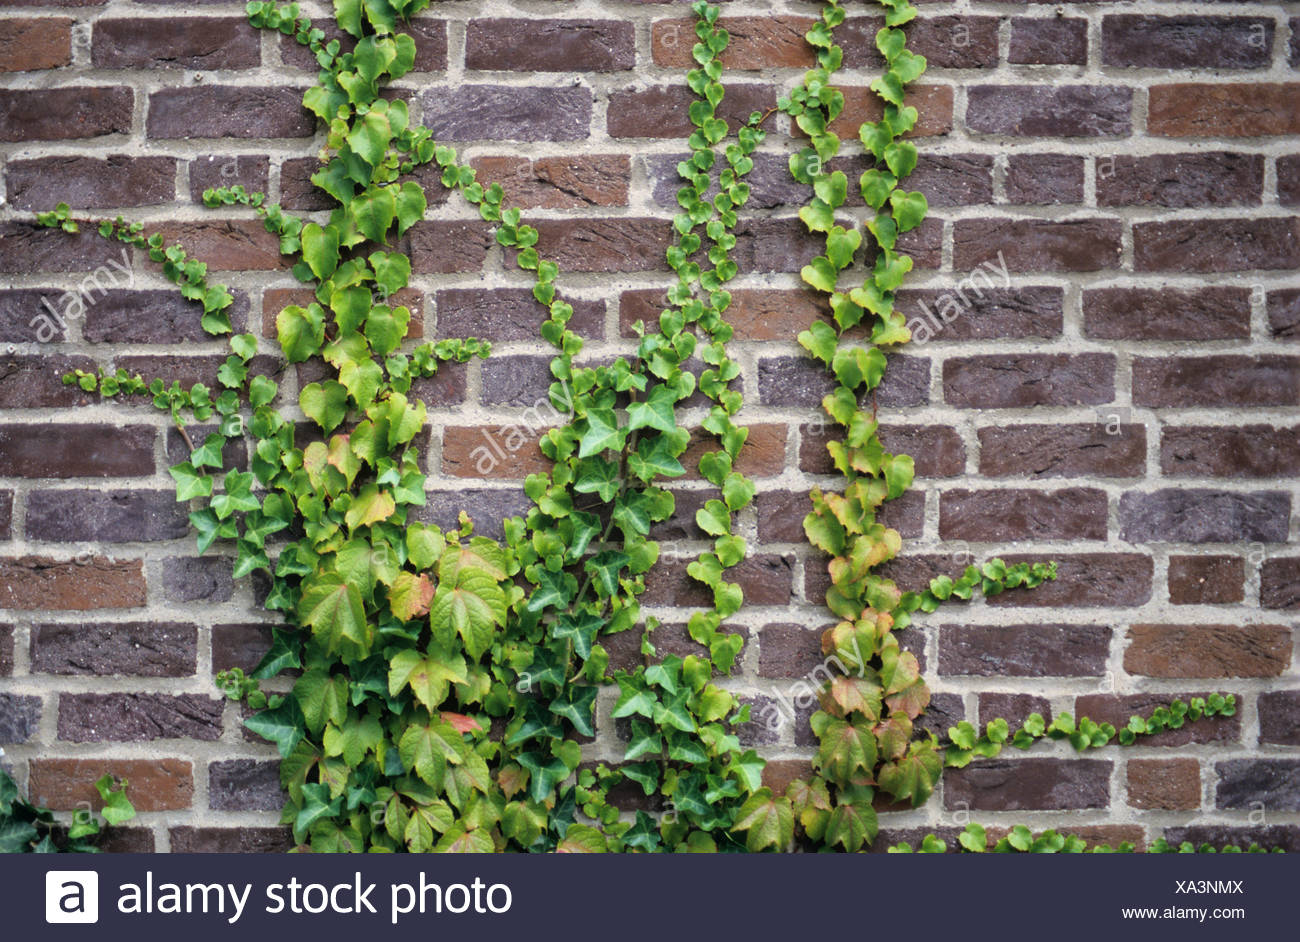 Common Ivy (Hedera helix) and Japanese Ivy (Parthenocissus tricuspidata) growing on a brick wall Stock Photo